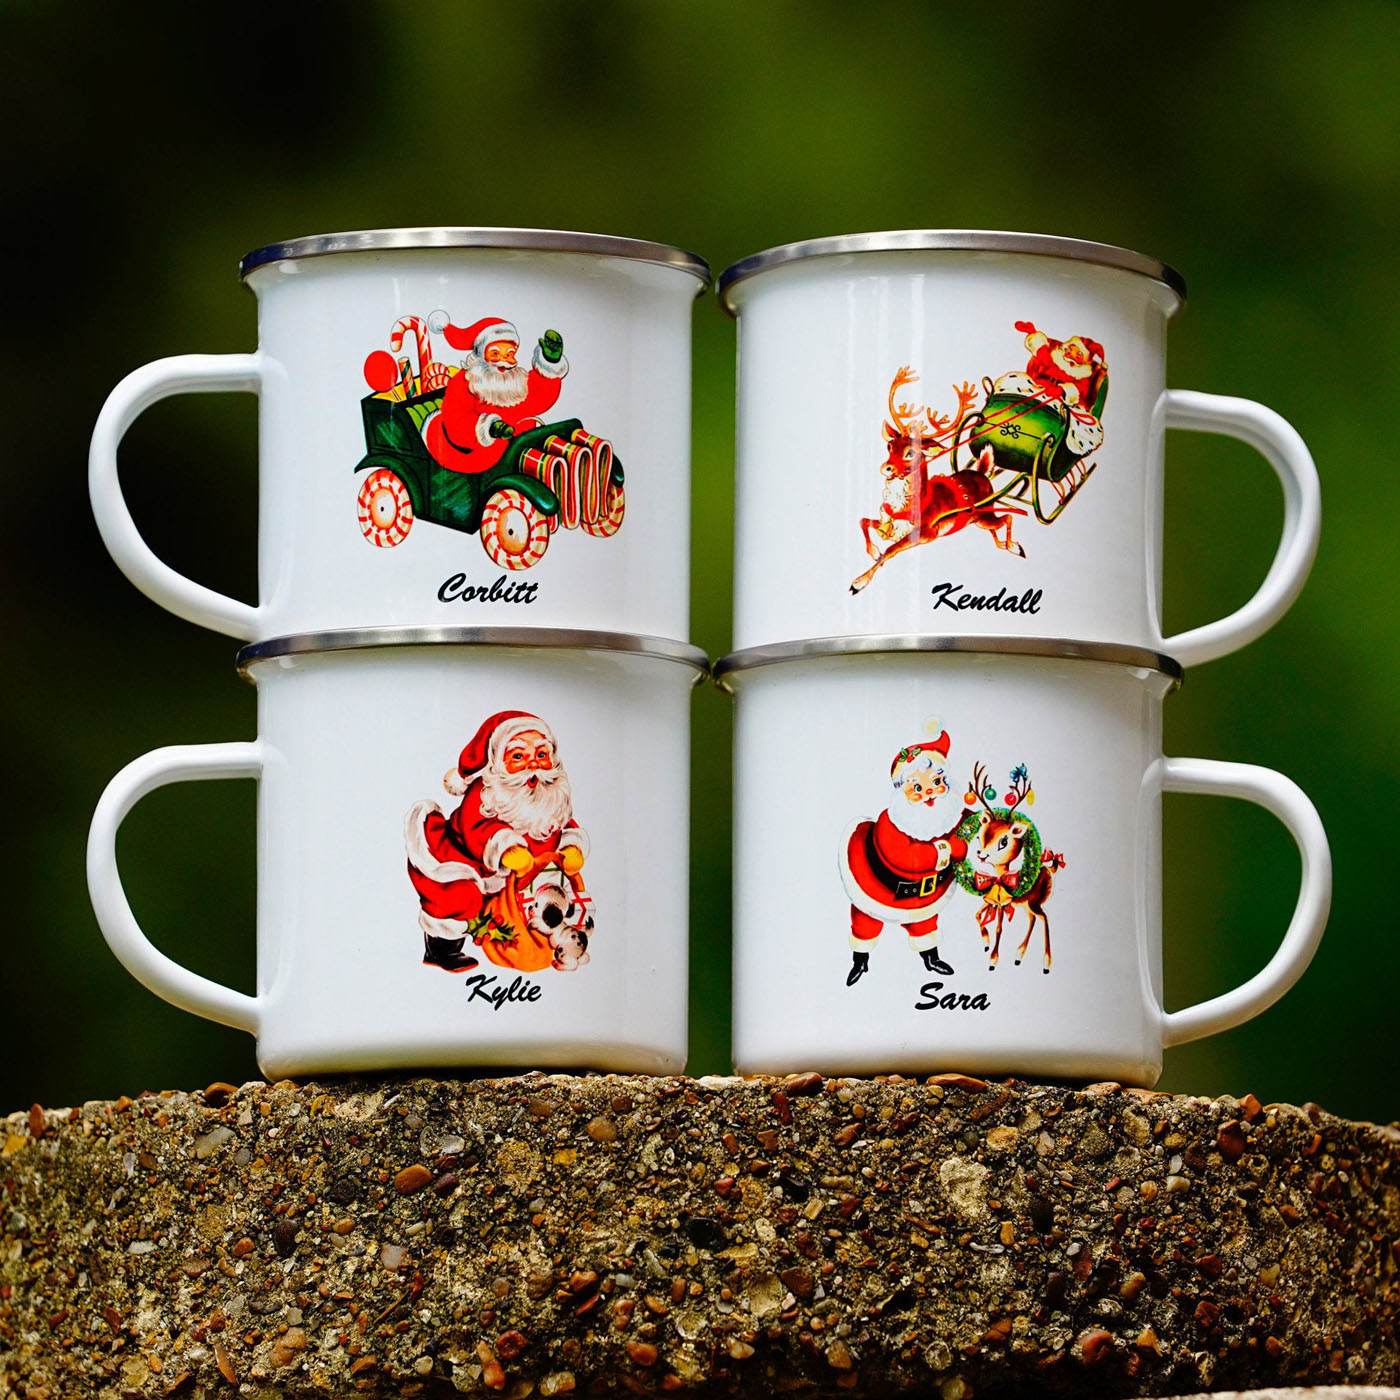 Santa Mugs Are Comin To Town Flea Market Finds Home And Garden Decorating Ideas By Expert Interior Decorators